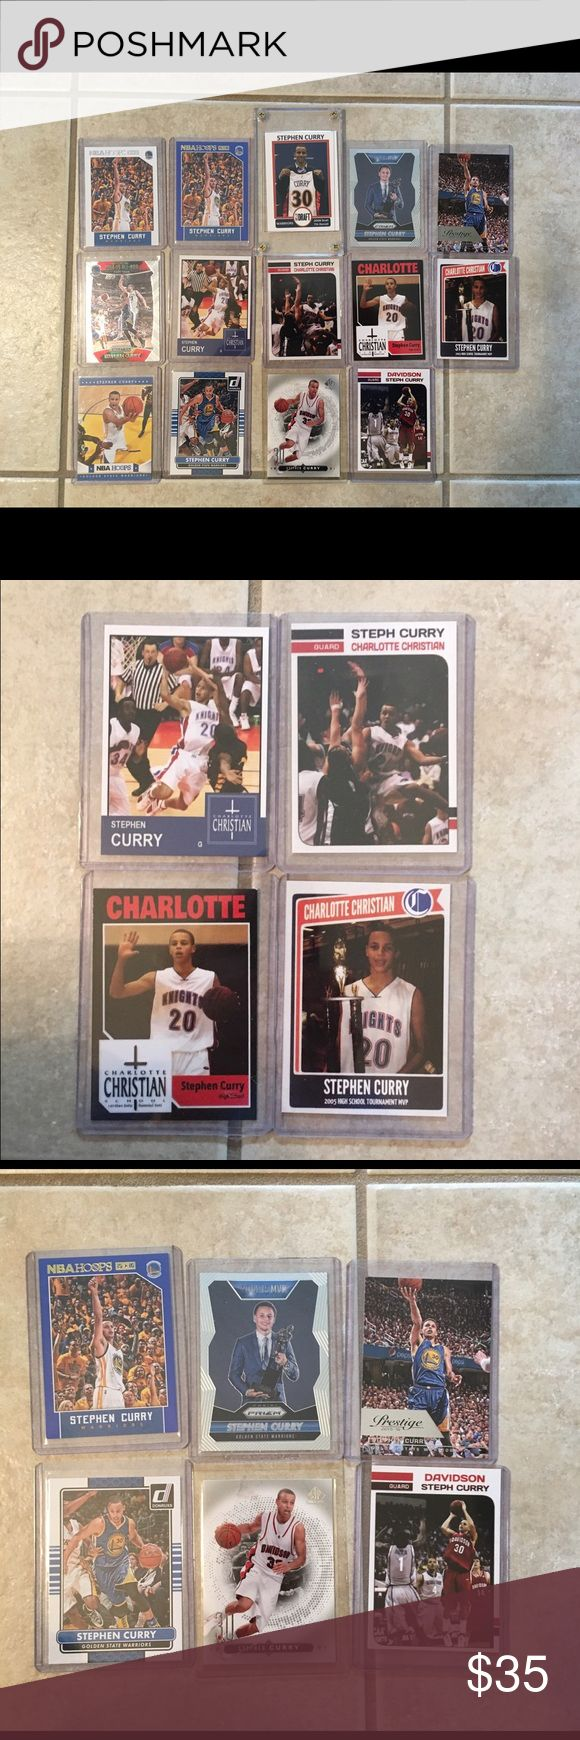 14 Stephen Curry cards! Today only! Fantastic deal!  4 high school cards, 2 Davidson college and 8 NBA cards!!! Accessories